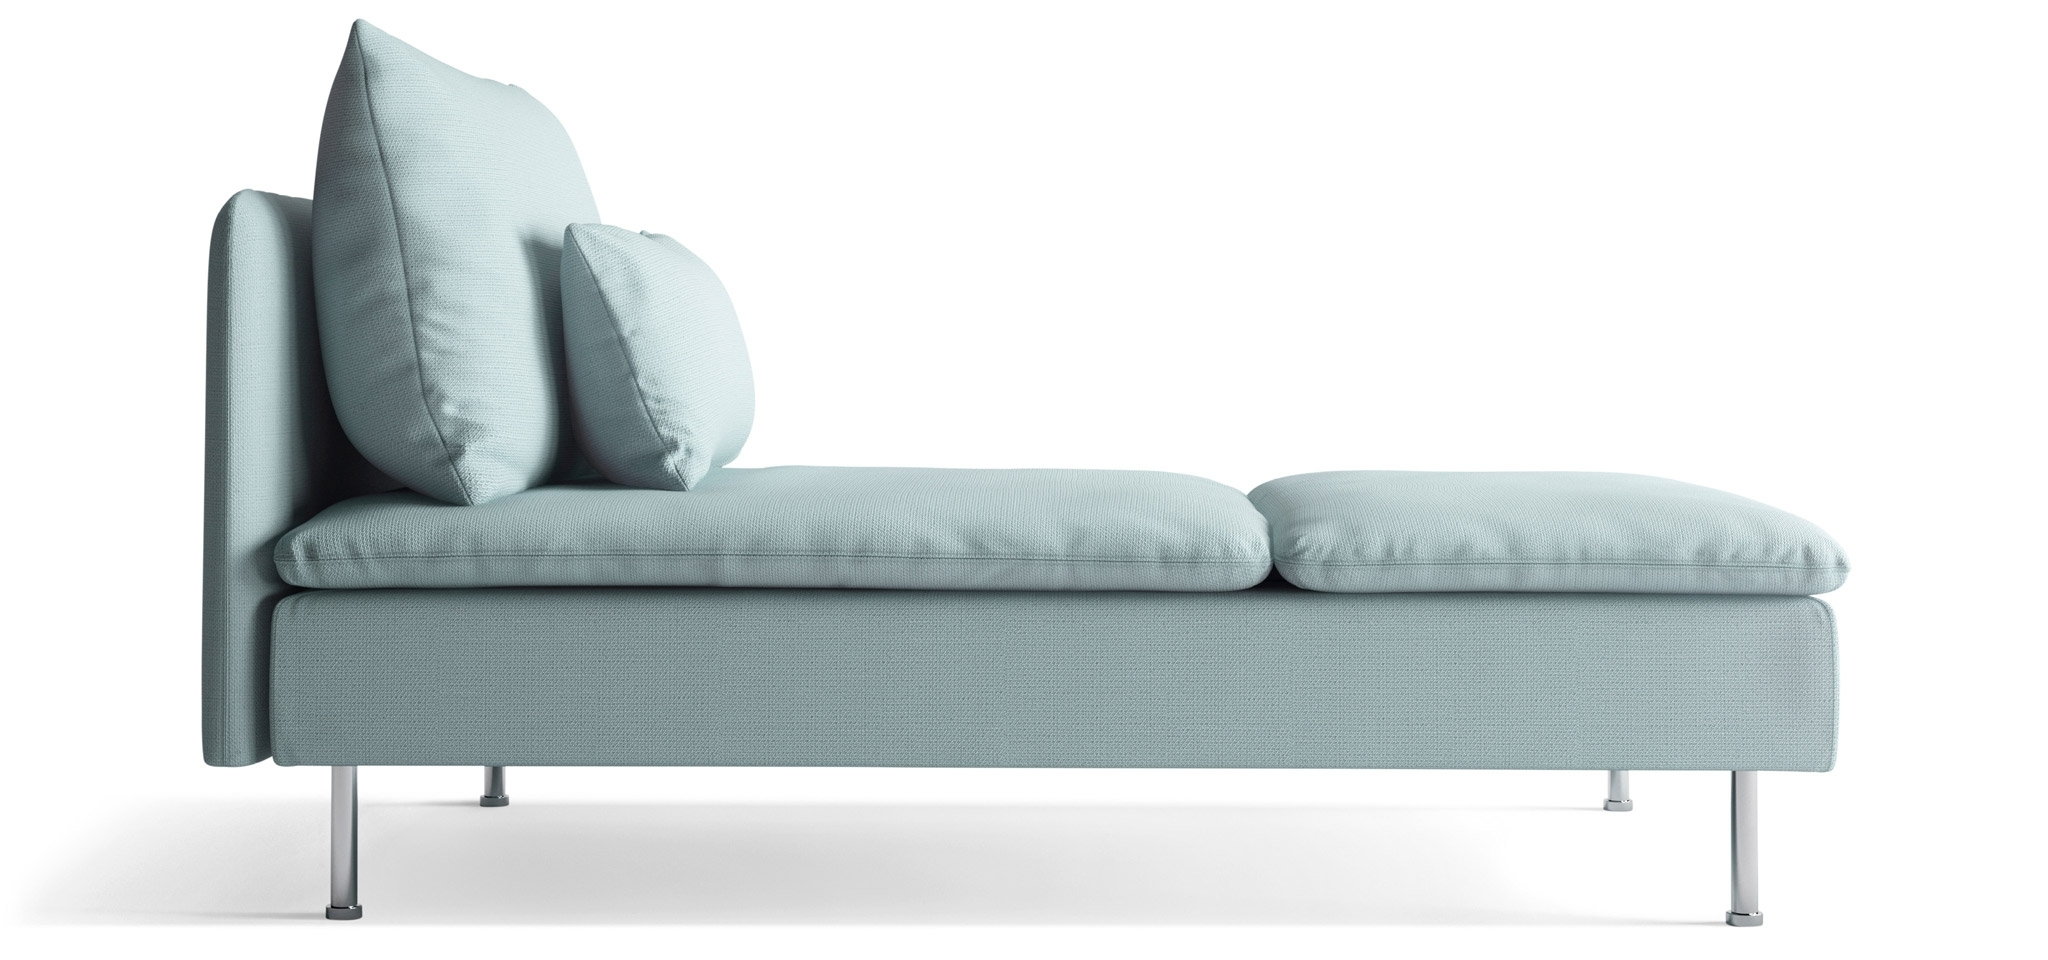 Ikea Chaise Longues Within Well Liked Fabric Chaise Longues (View 7 of 15)